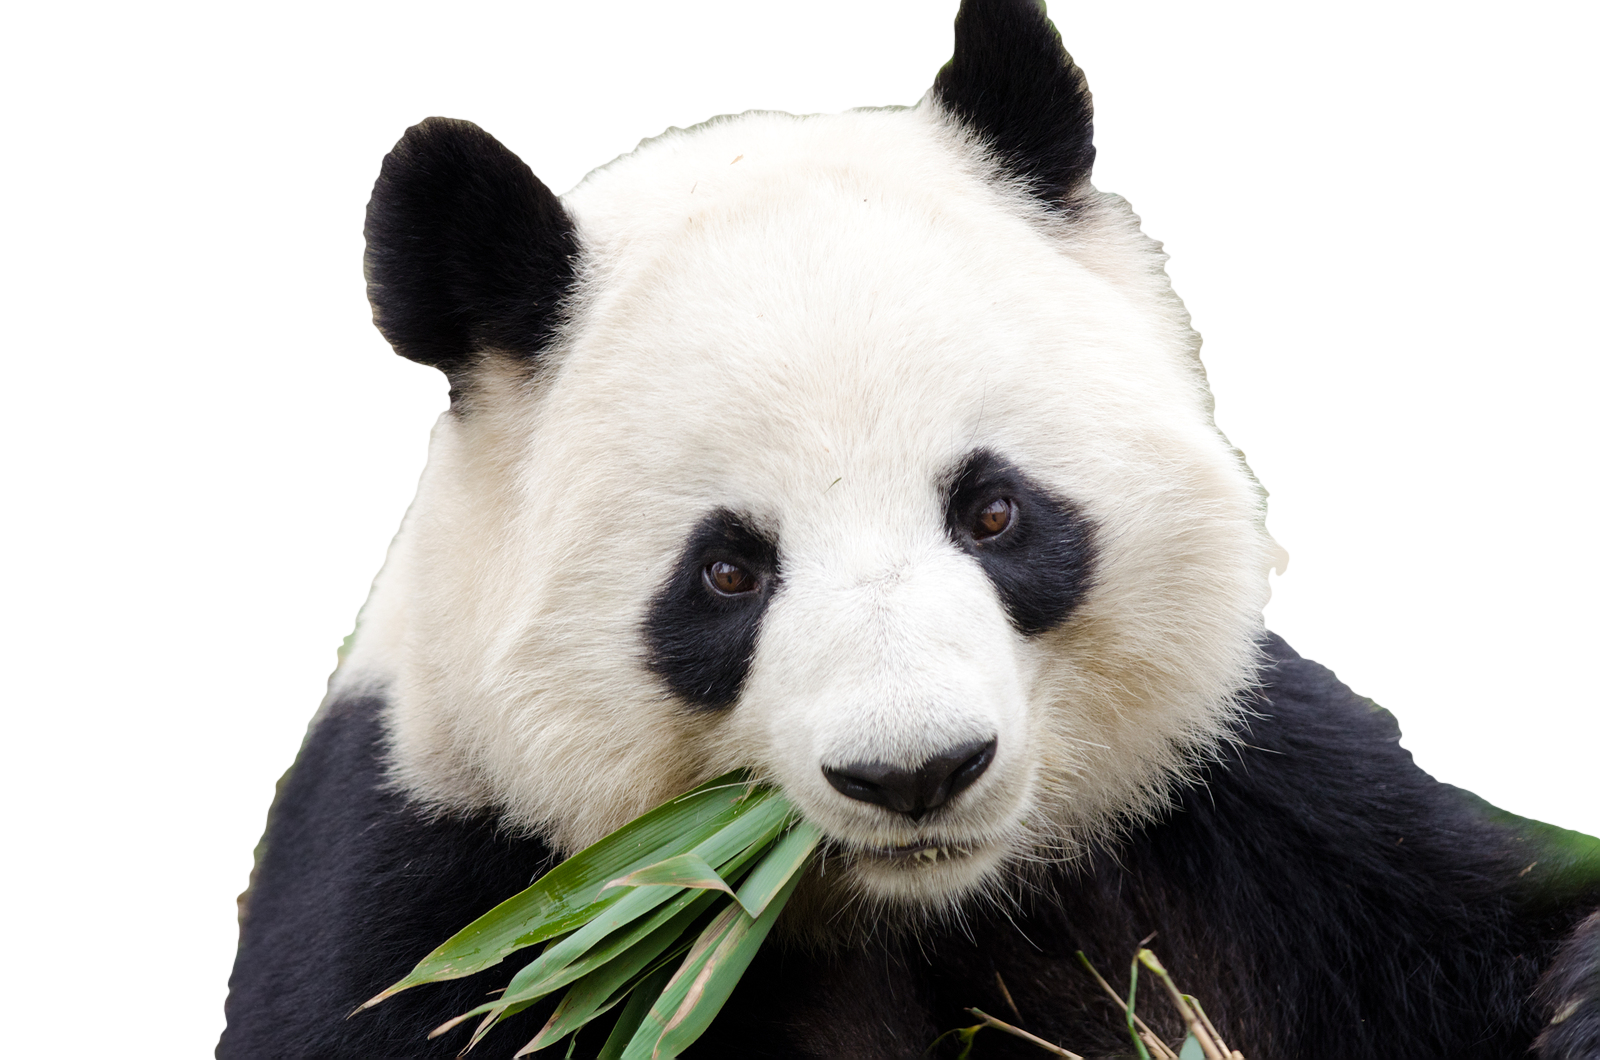 Giant panda png. Dujiangyan city chengdu research